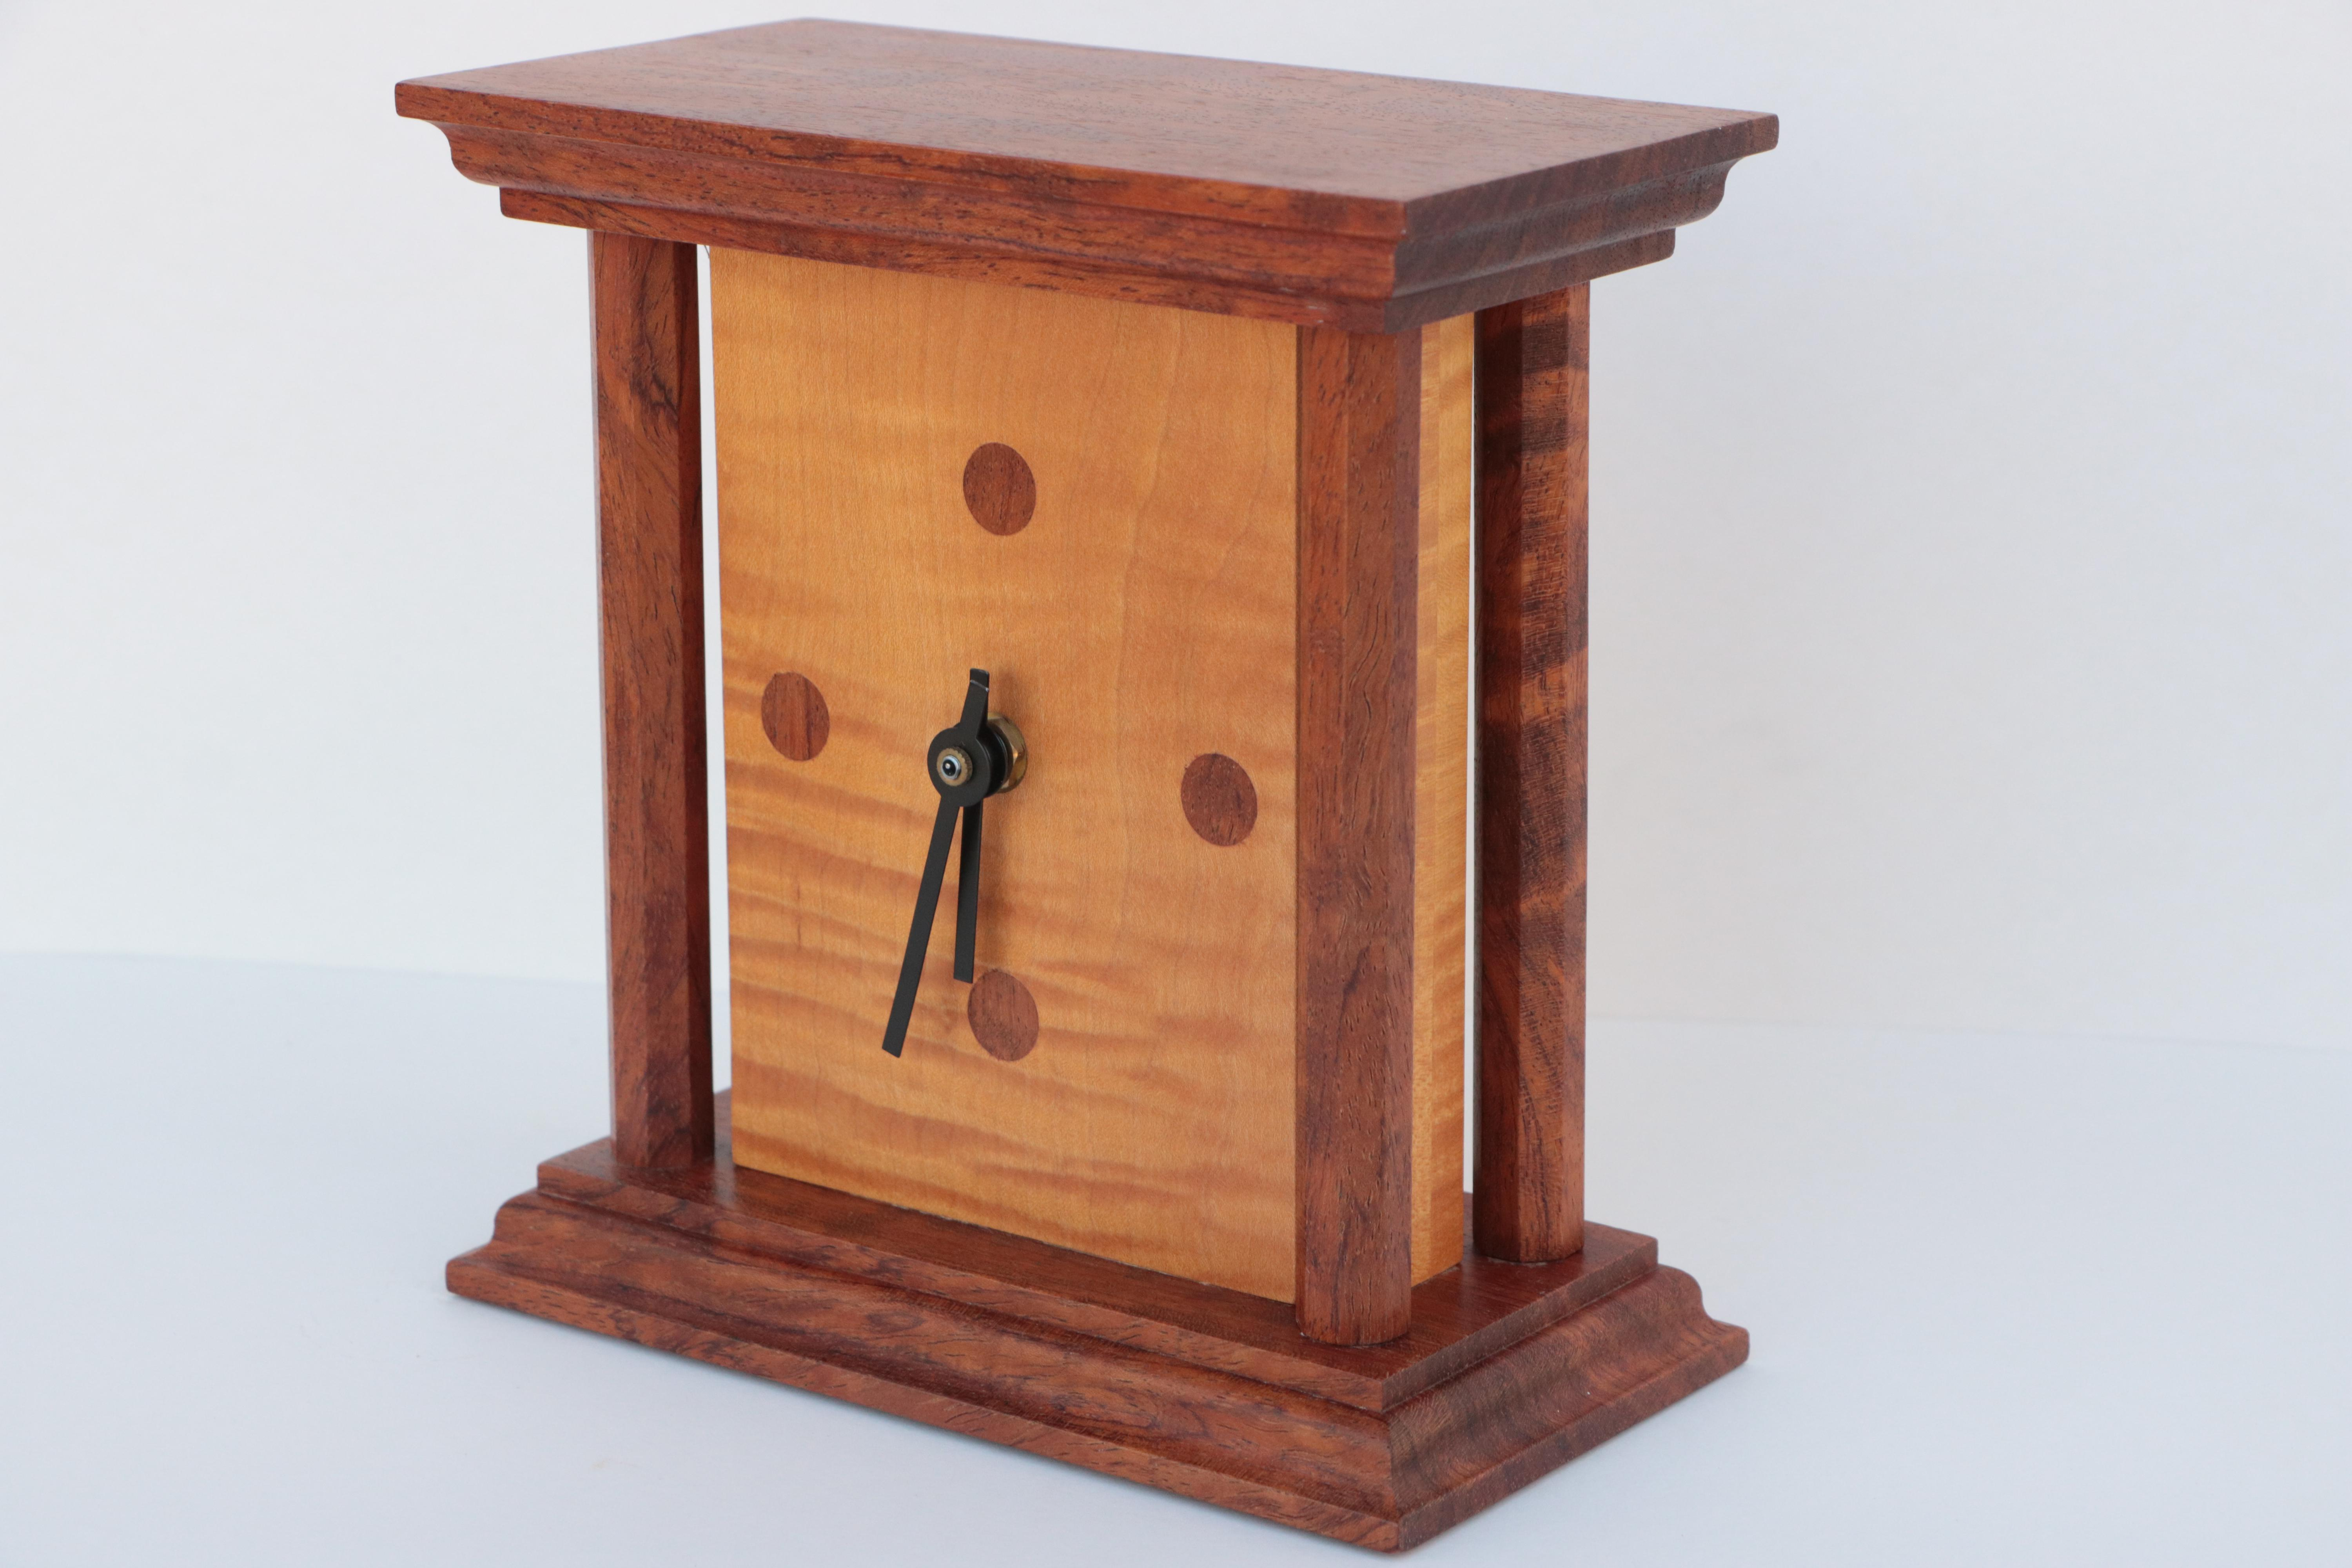 Modernist Wood Table Clock in Curly Maple with Mahogany Tone Case